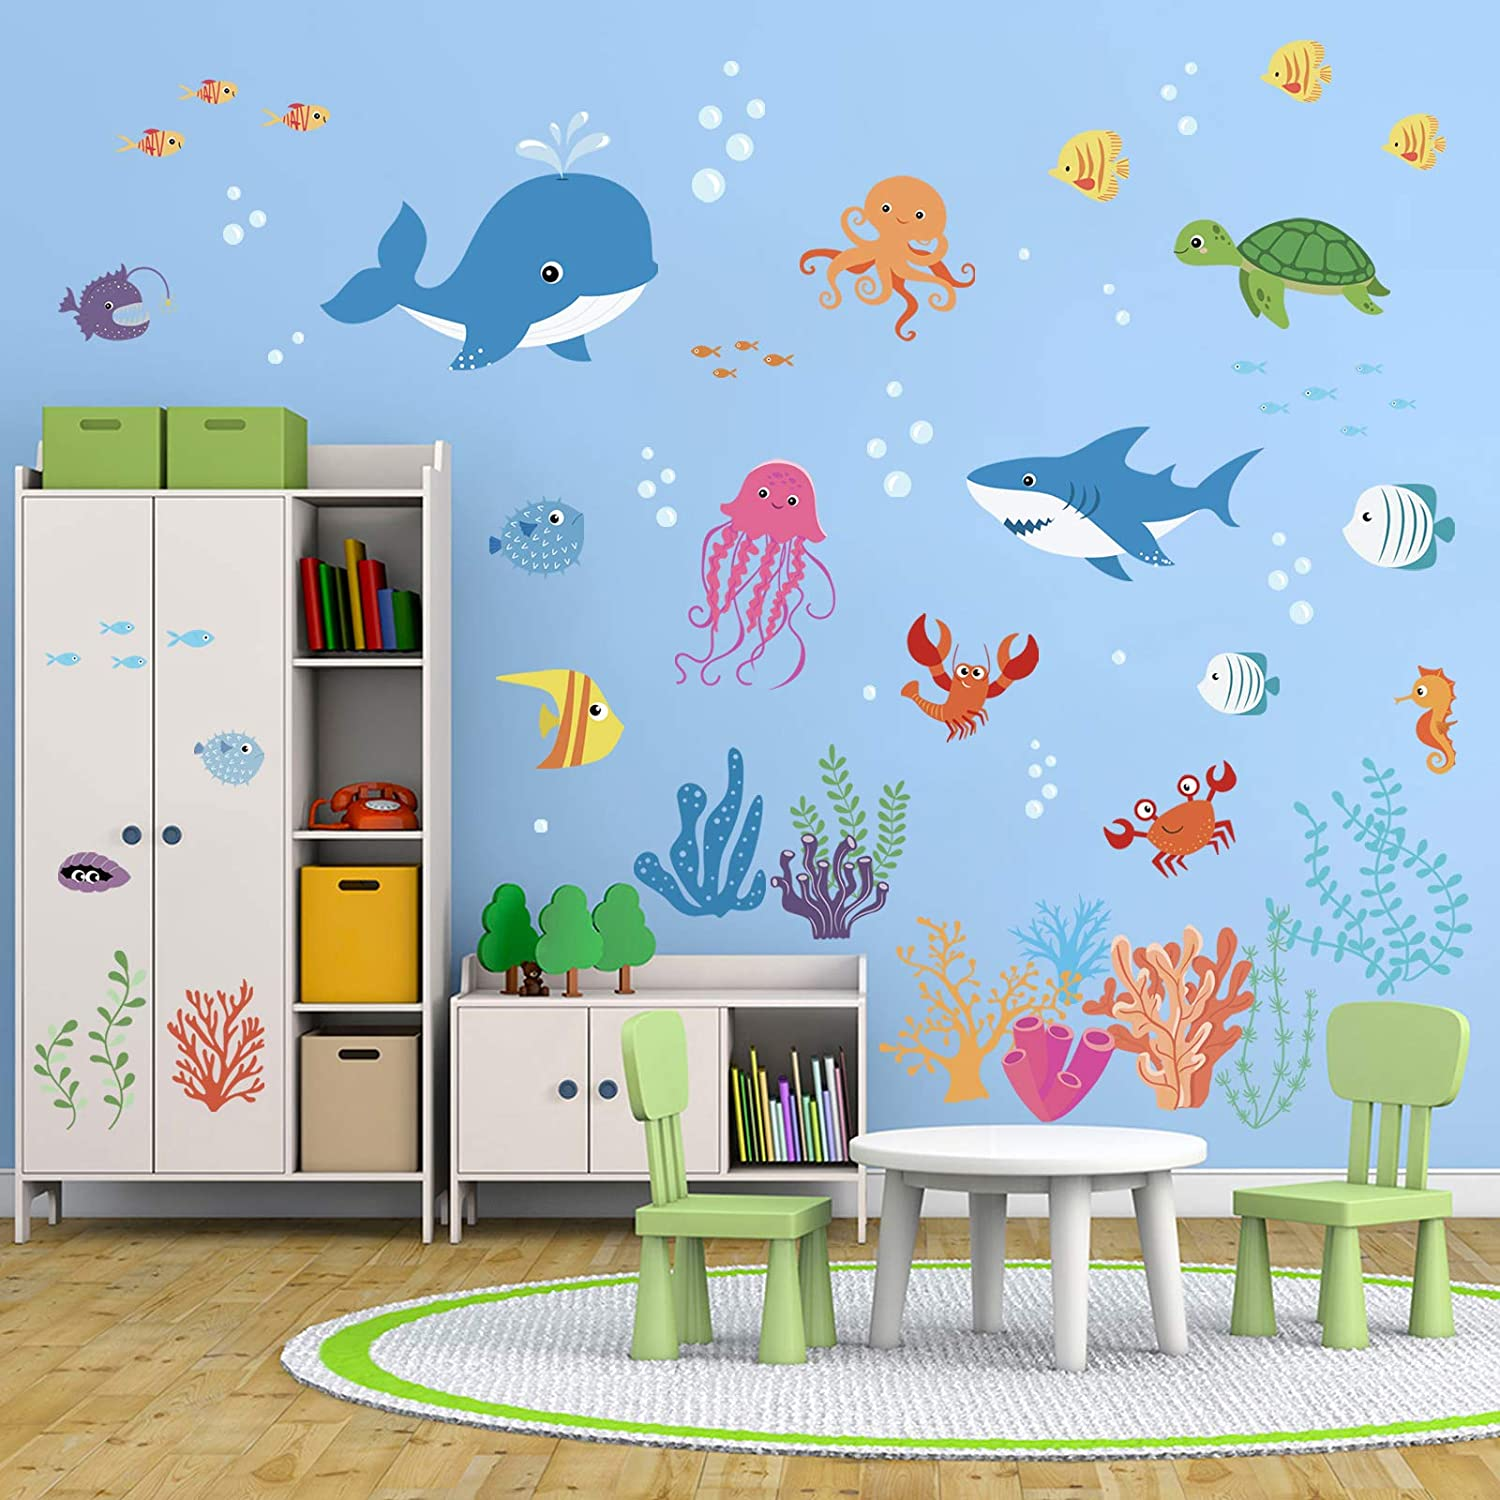 Decalmile Under The Sea Dolphin Fish Wall Stickers Kids Room Wall Decor Vinyl Peel And Stick Wall Decals For Baby Nursery Childrens Bedroom Bathroom Decoration Amazon Co Uk Kitchen Home